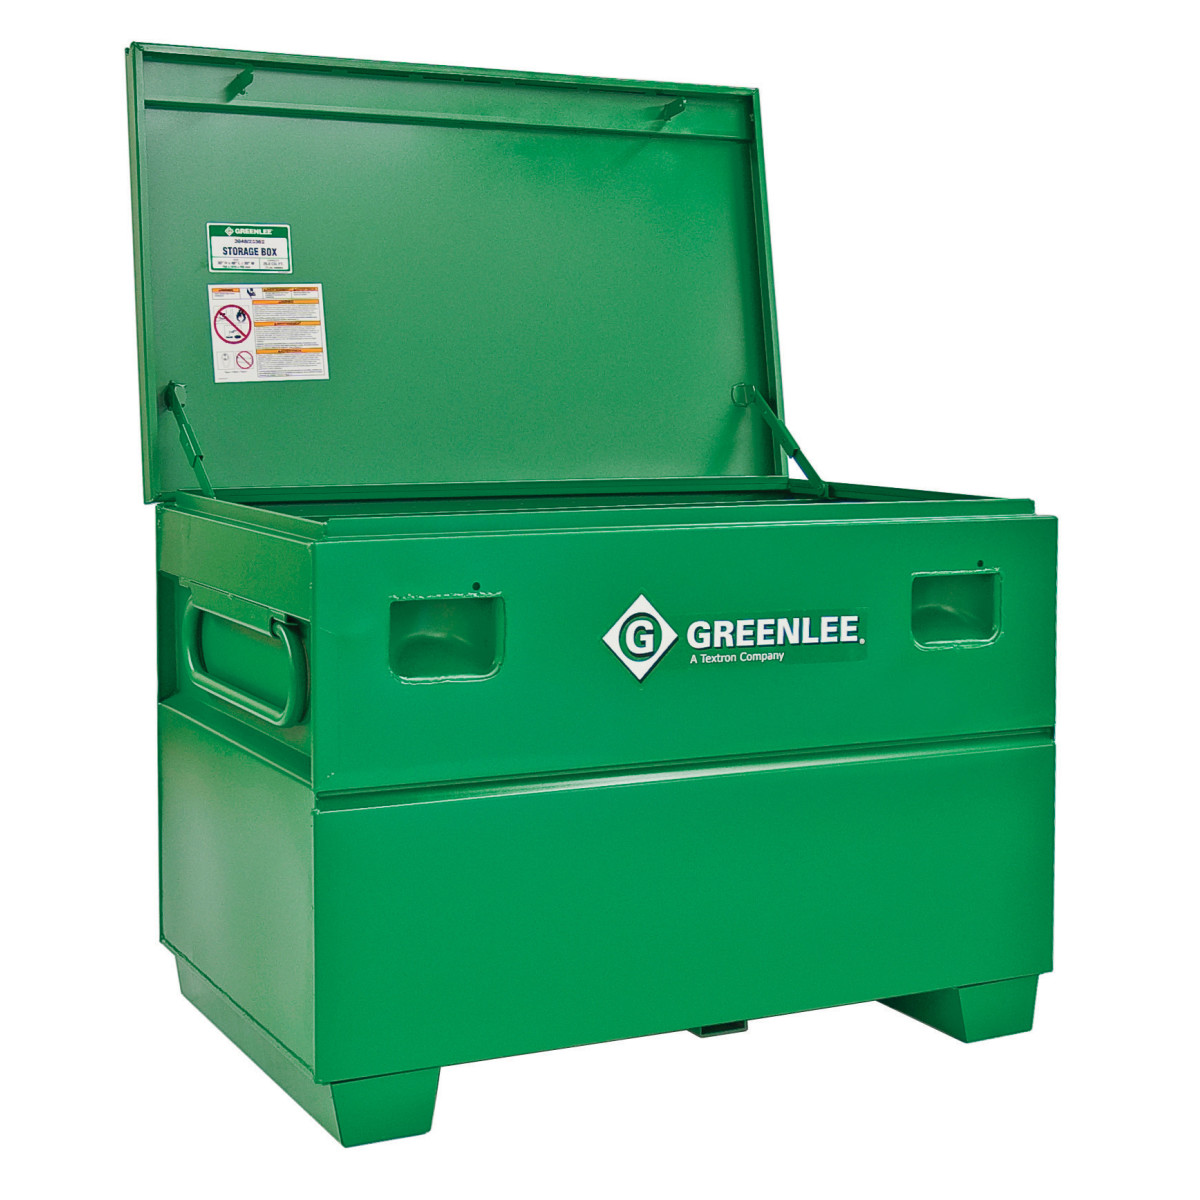 Greenlee 3048 Box Assembly Chest (3048)